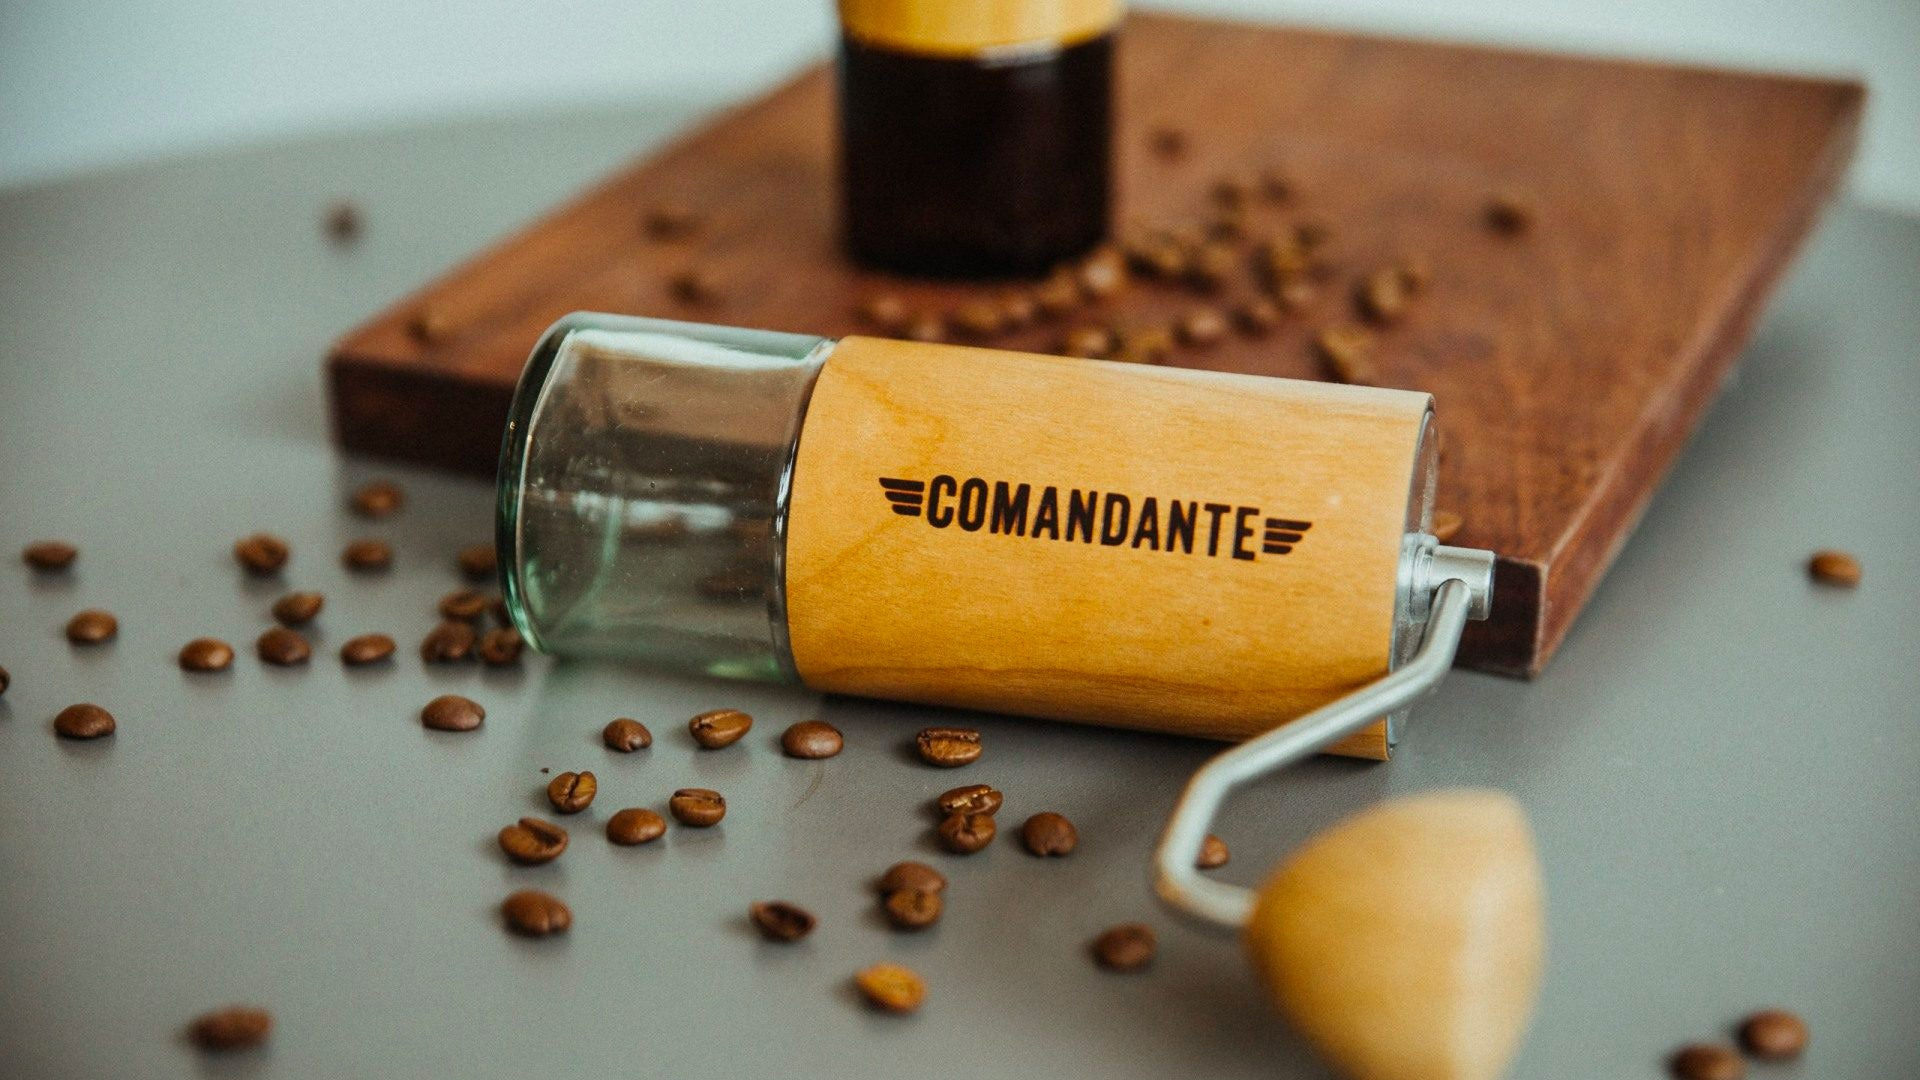 Comandante Grinder C40 Nitro Blade photographed at The Espresso Lab Roastery